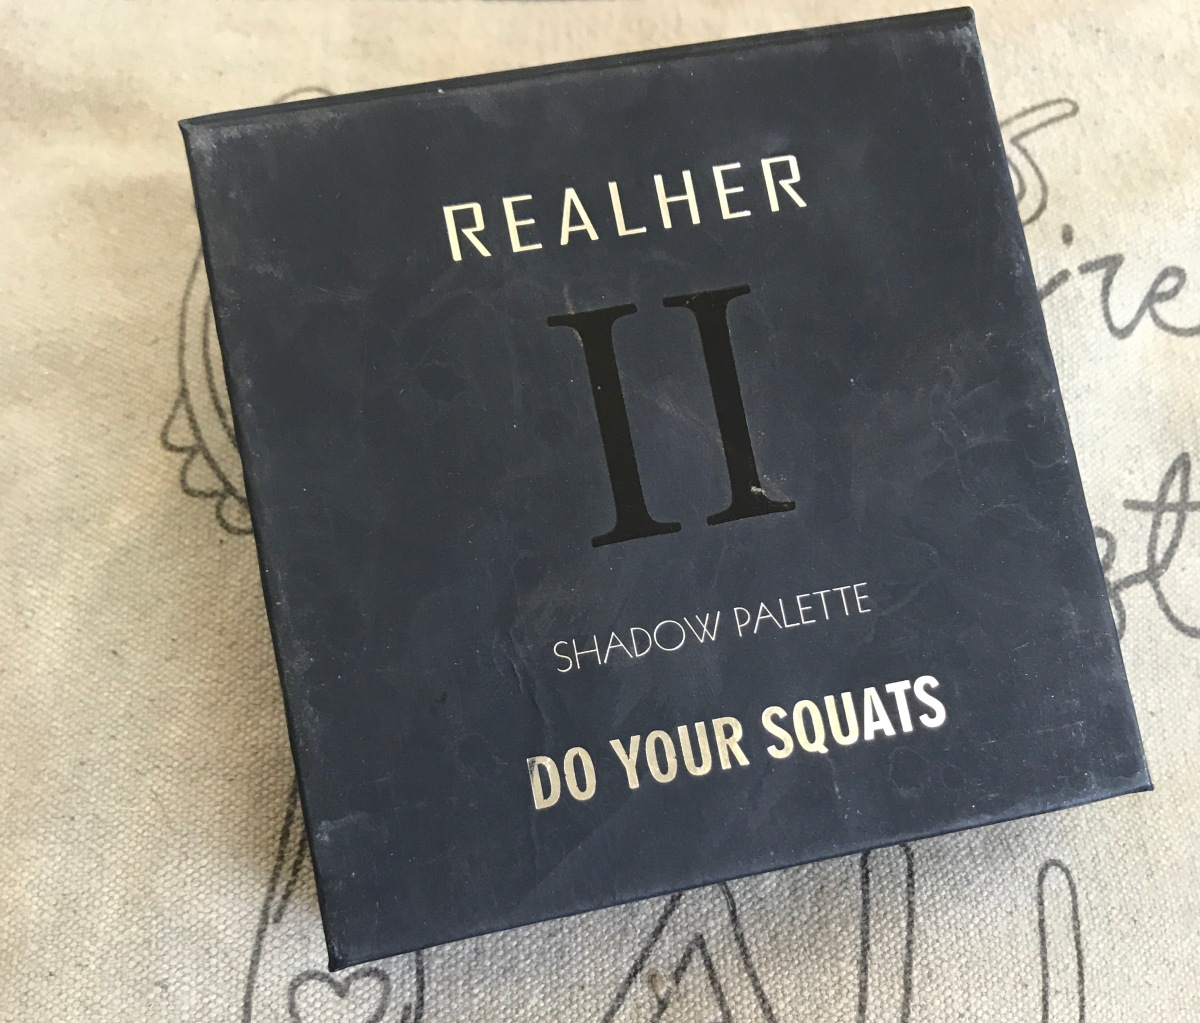 Real Her ~ Shadow Palette II : Do Your Squats